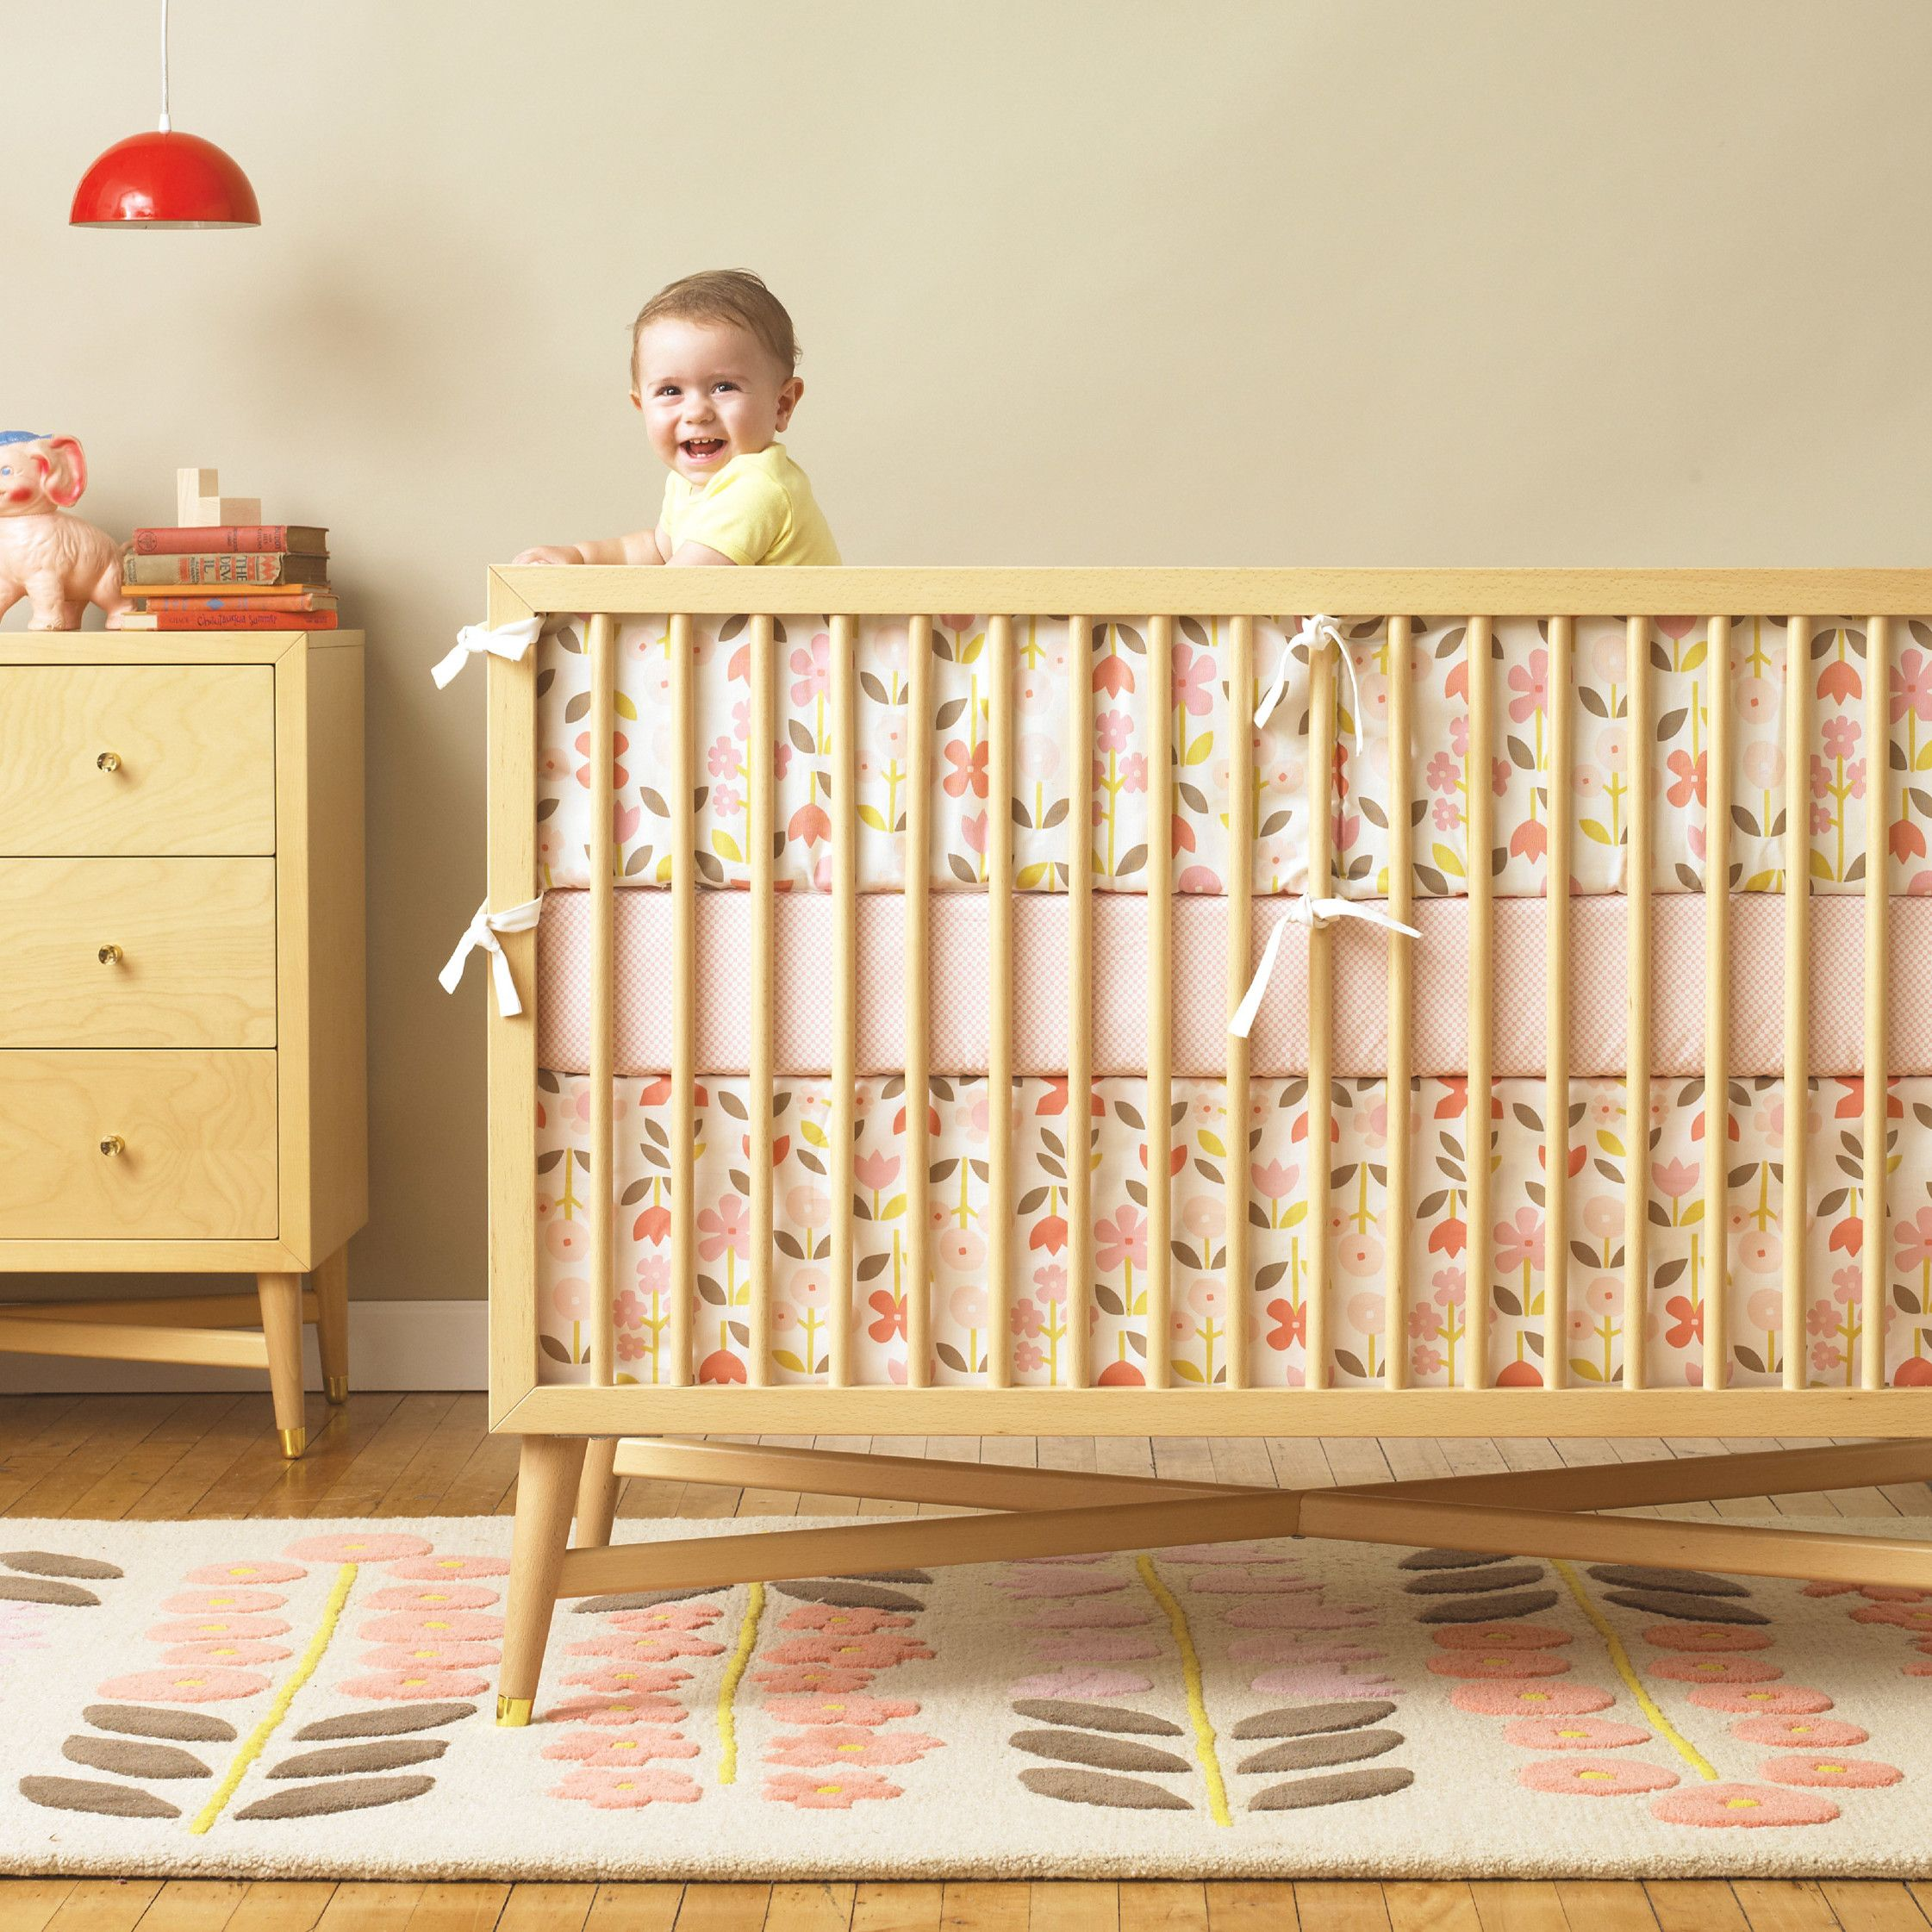 dwell baby furniture. Rosette Nursery Bedding Collection Via Dwell Studio Baby Furniture